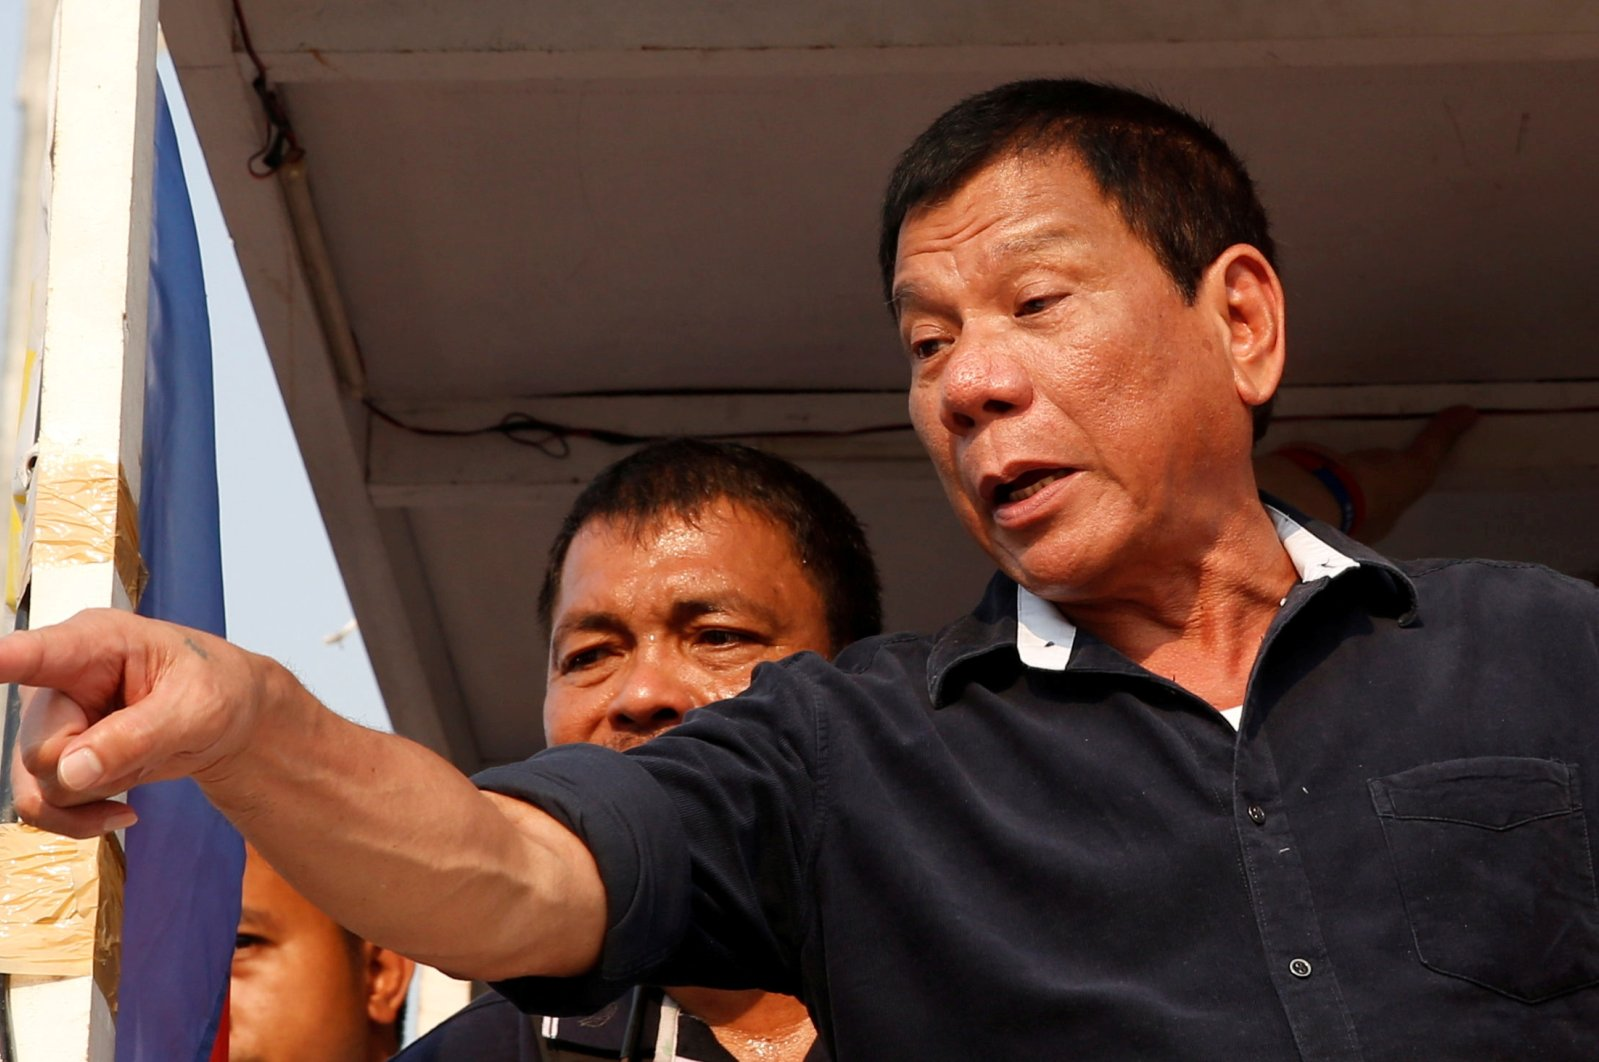 """President Rodrigo """"Digong"""" Duterte greets supporters during election campaigning in Malabon, Metro Manila, Philippines, April 27, 2016. (Reuters Photo)"""